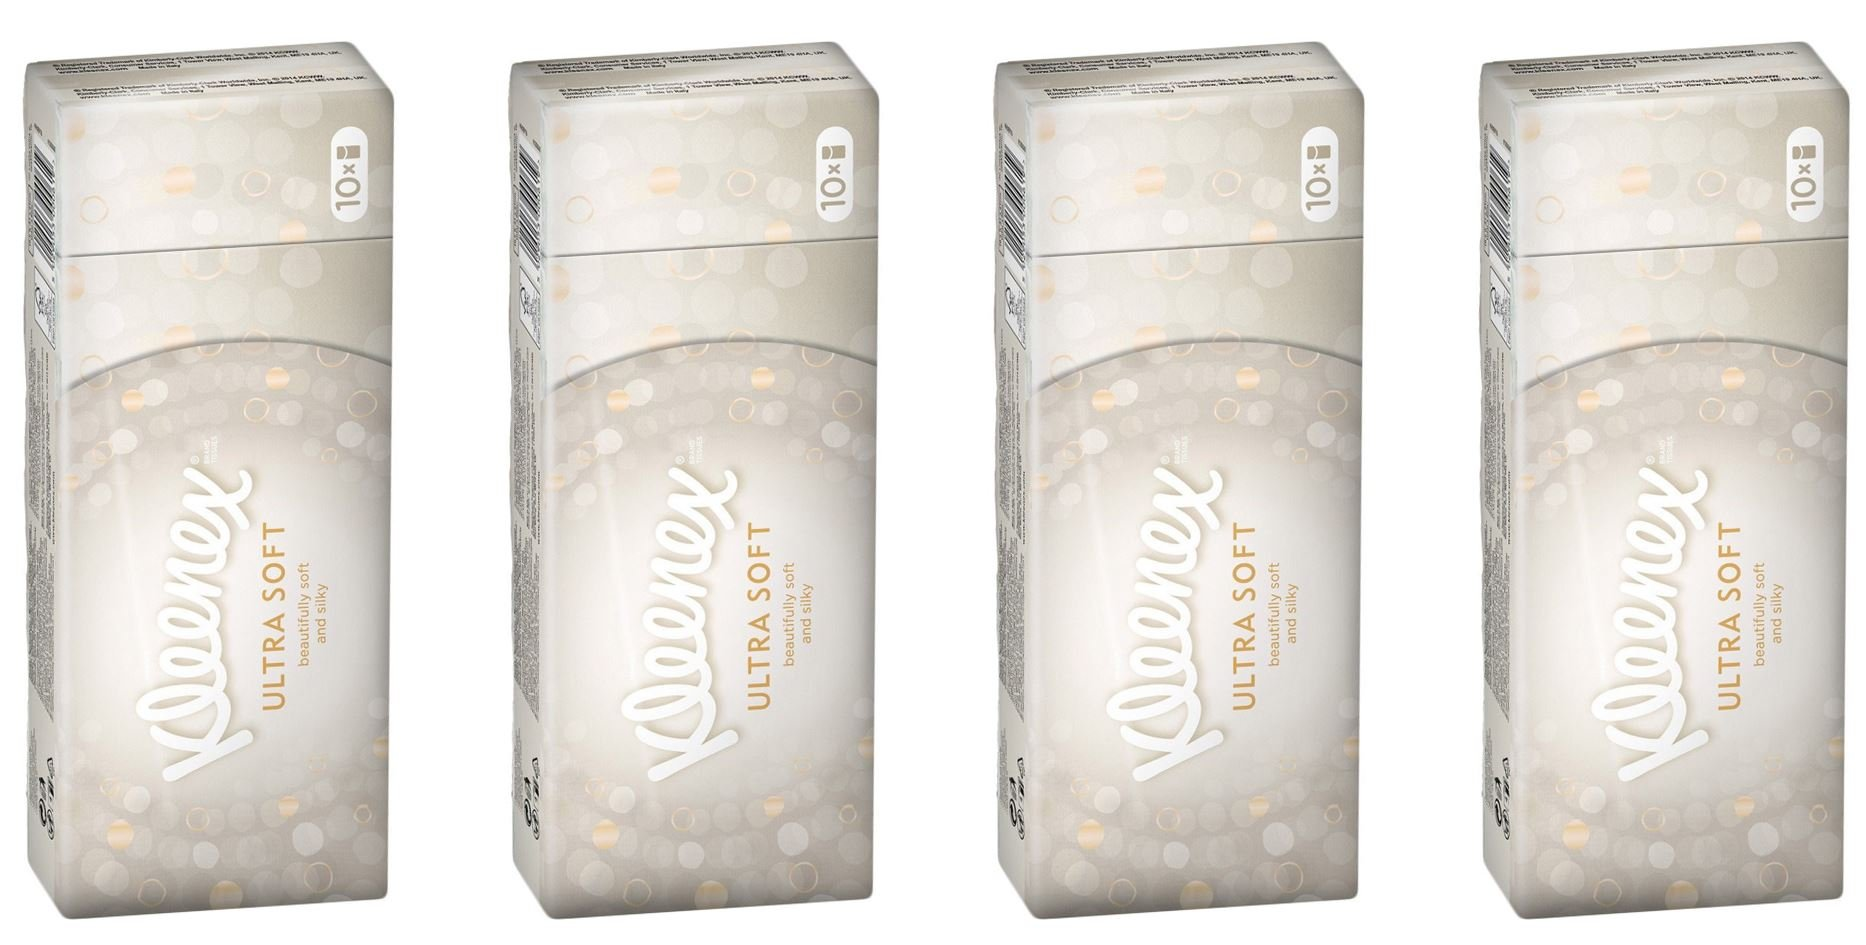 Kleenex Pocket Tissues Ultra Soft and Silky 40 packs of 9 Tissues